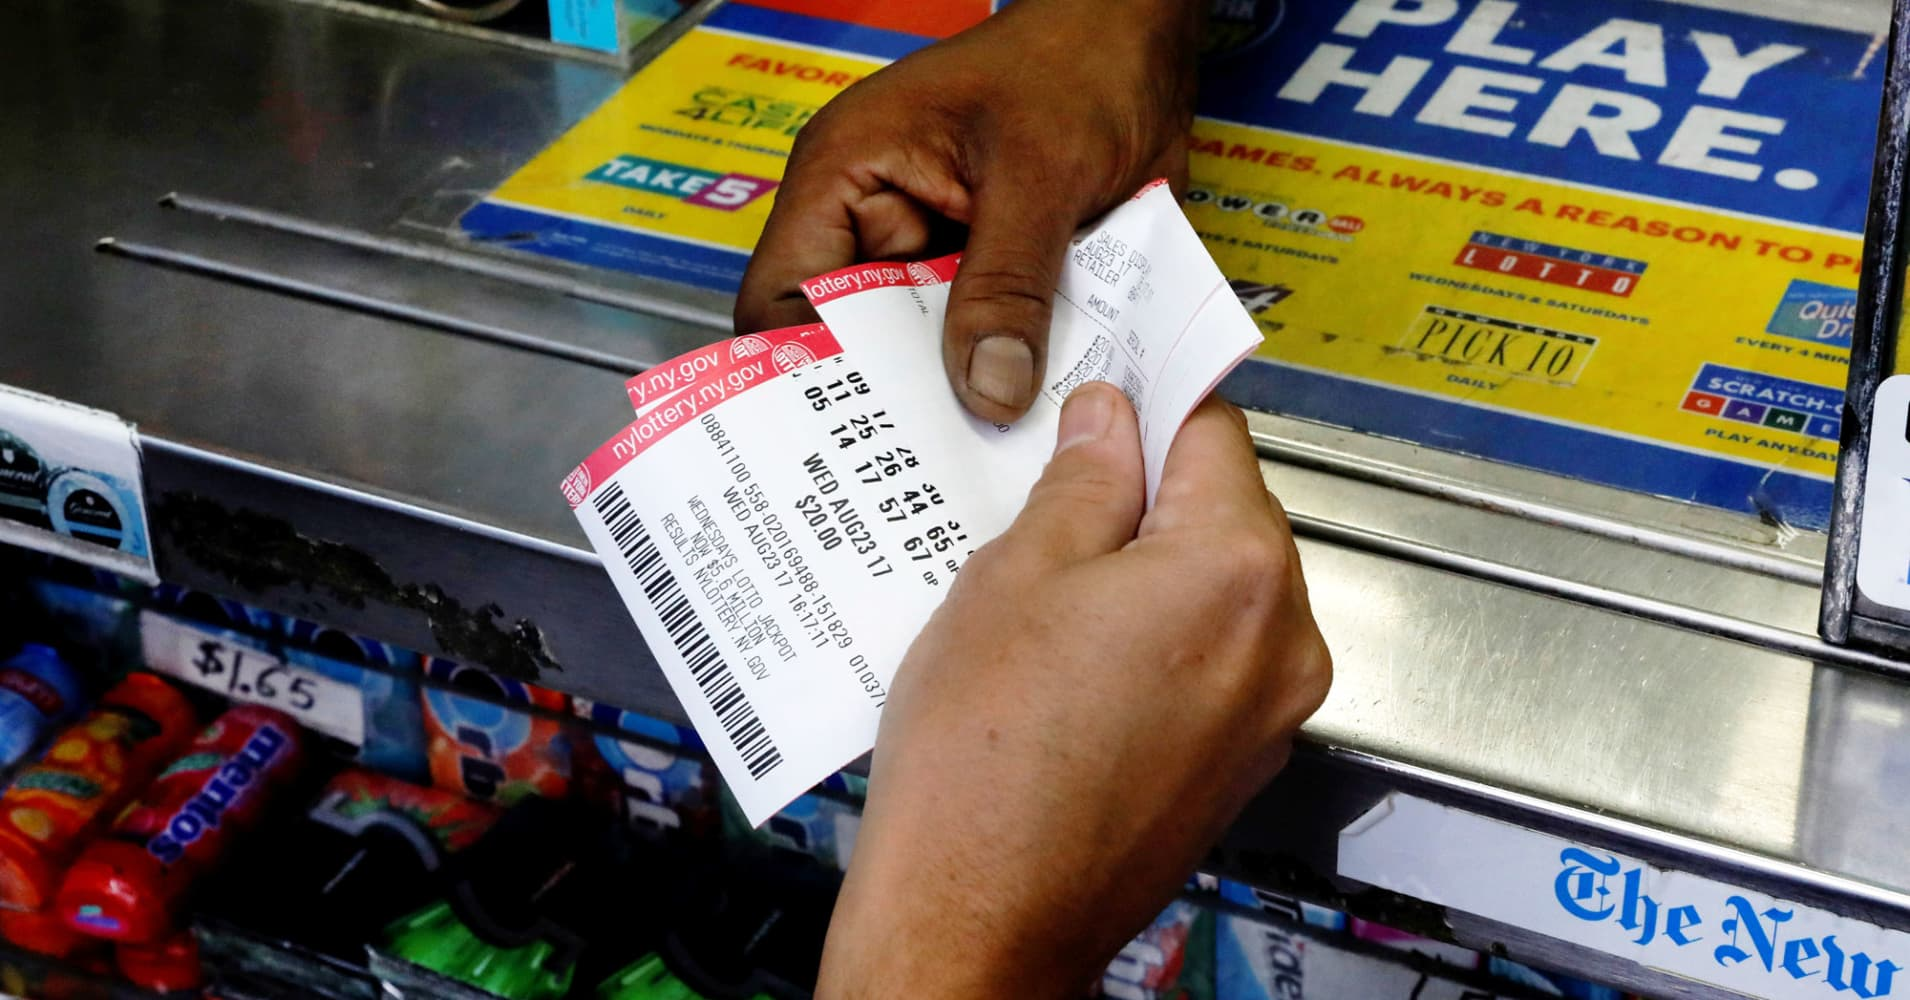 Your step-by-step guide to winning the lottery: Would you